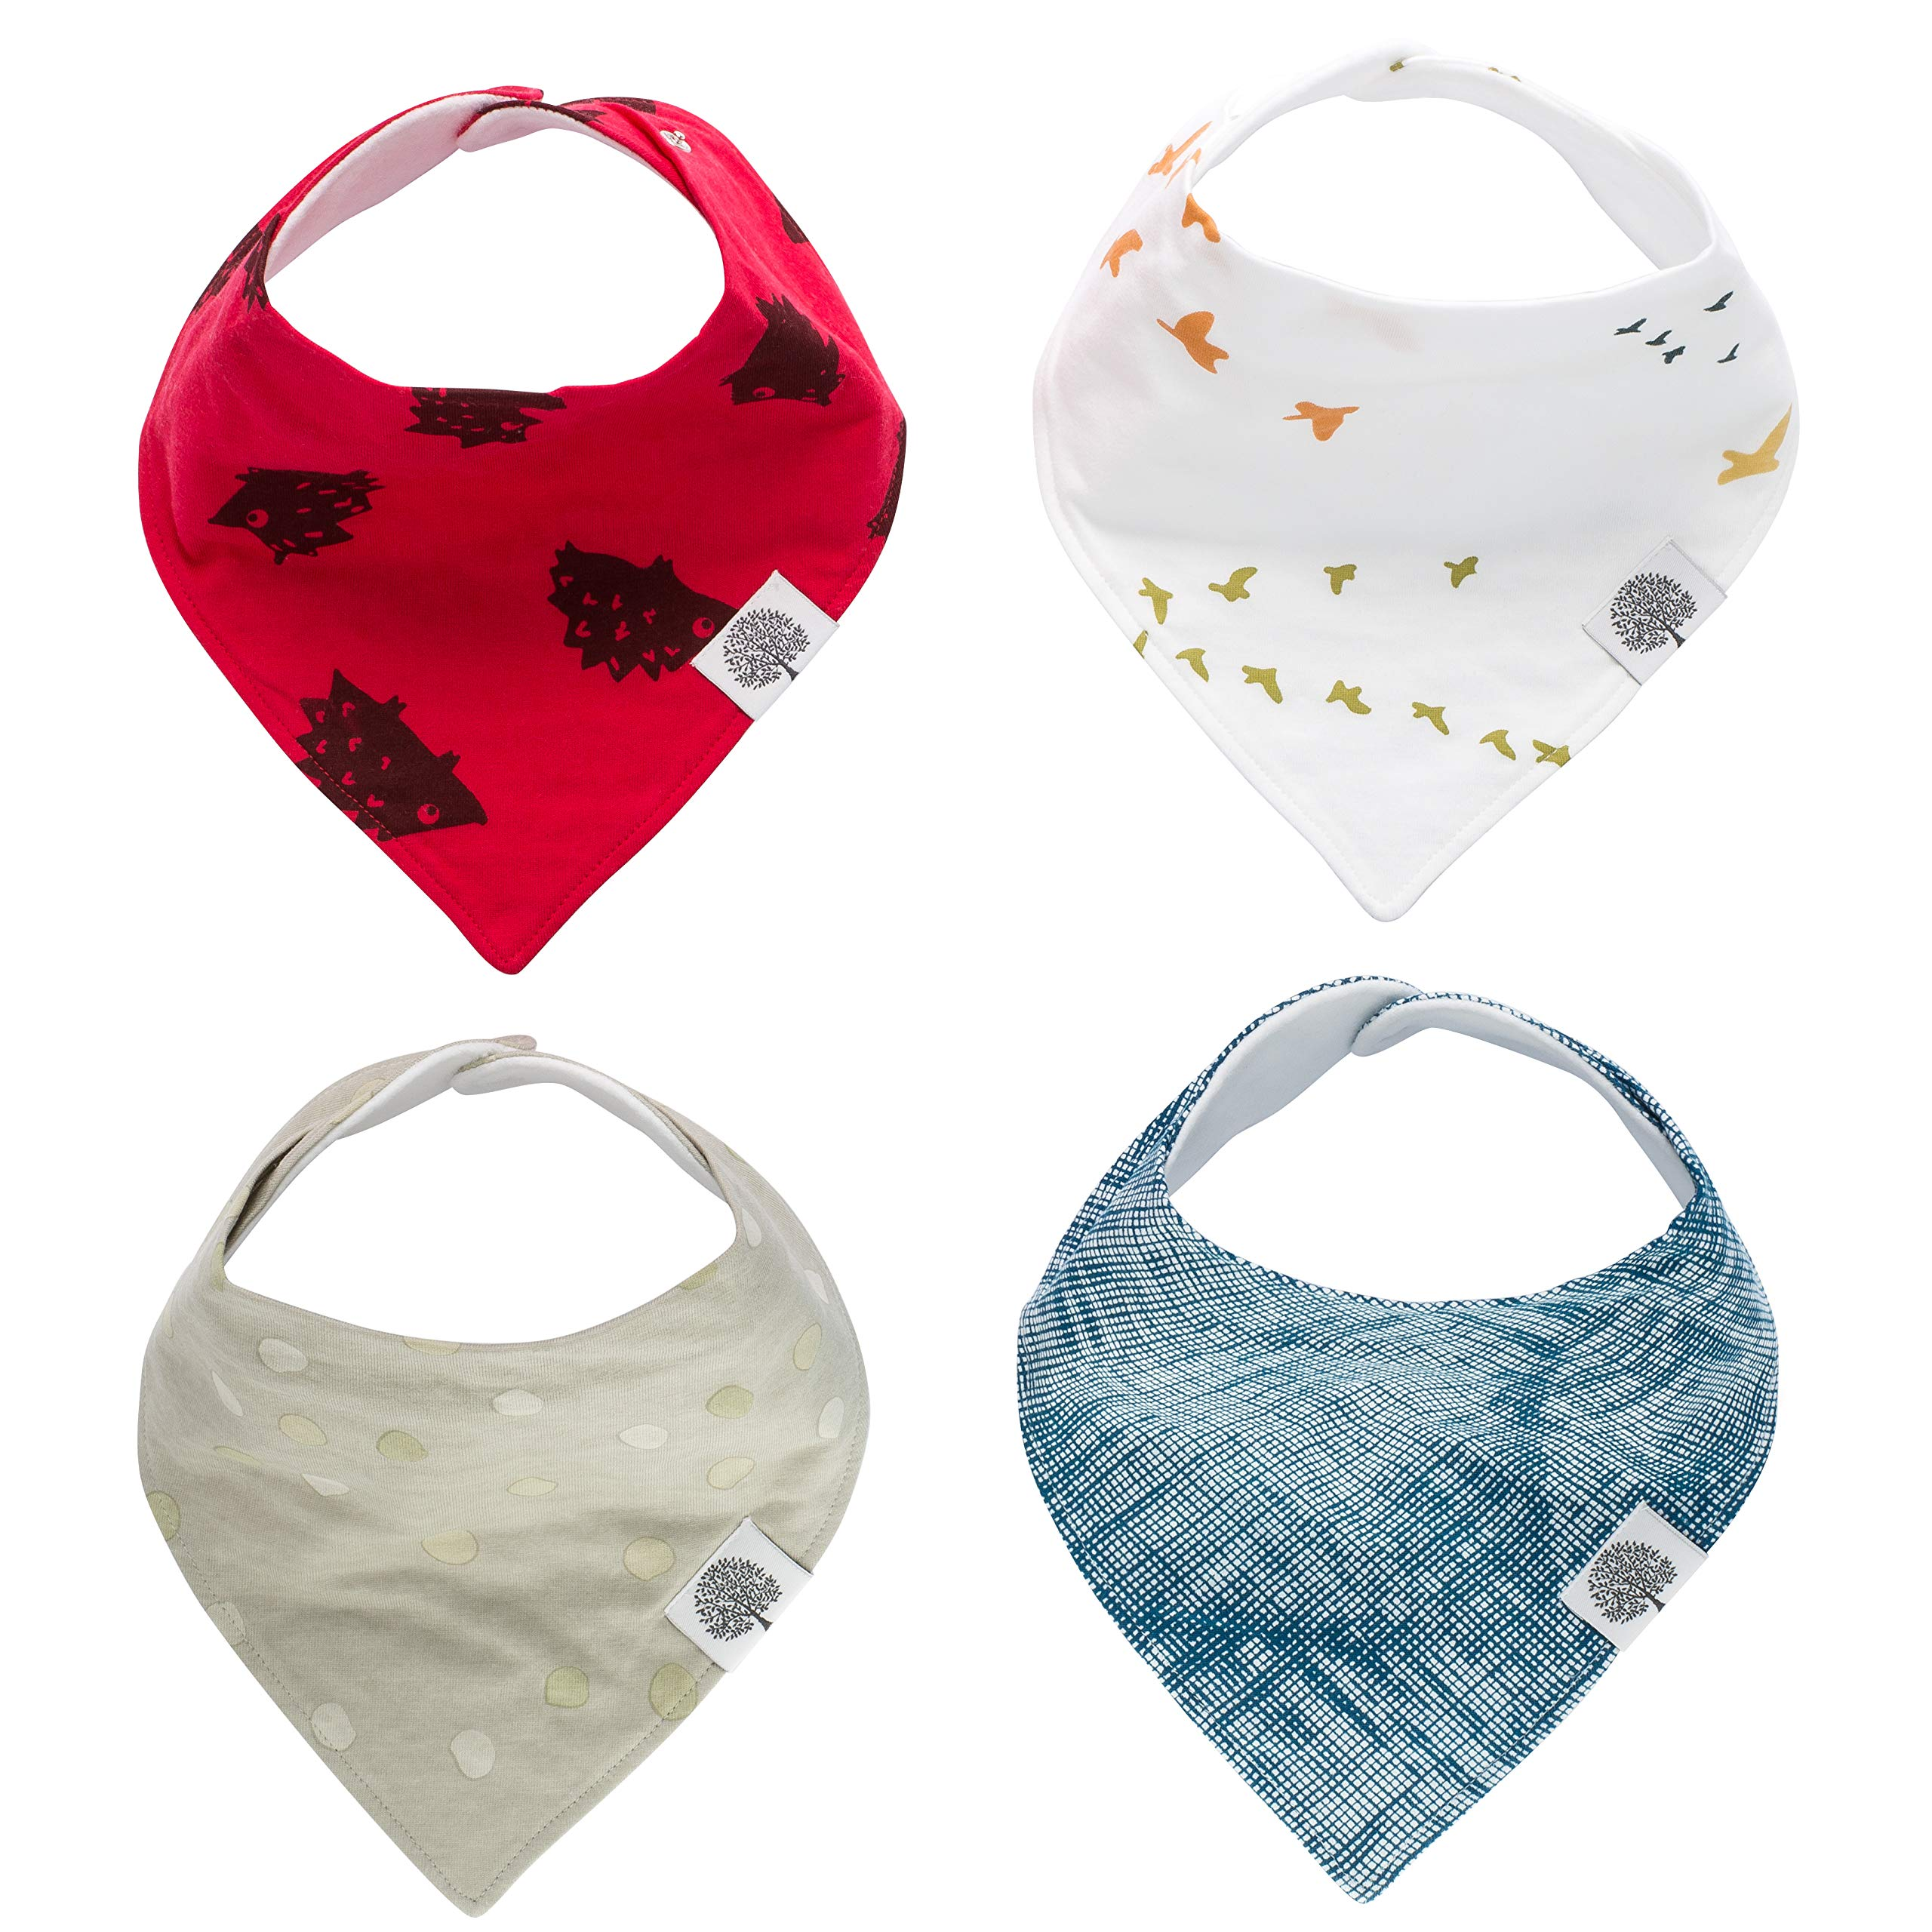 Mother & Kids Eva Infants Feeding Bibs Care Accessories Waterproof Cute Cartoon Baby Kids 6 Months-4 Years Old Baby Girls Boys Feeding Care Strong Resistance To Heat And Hard Wearing